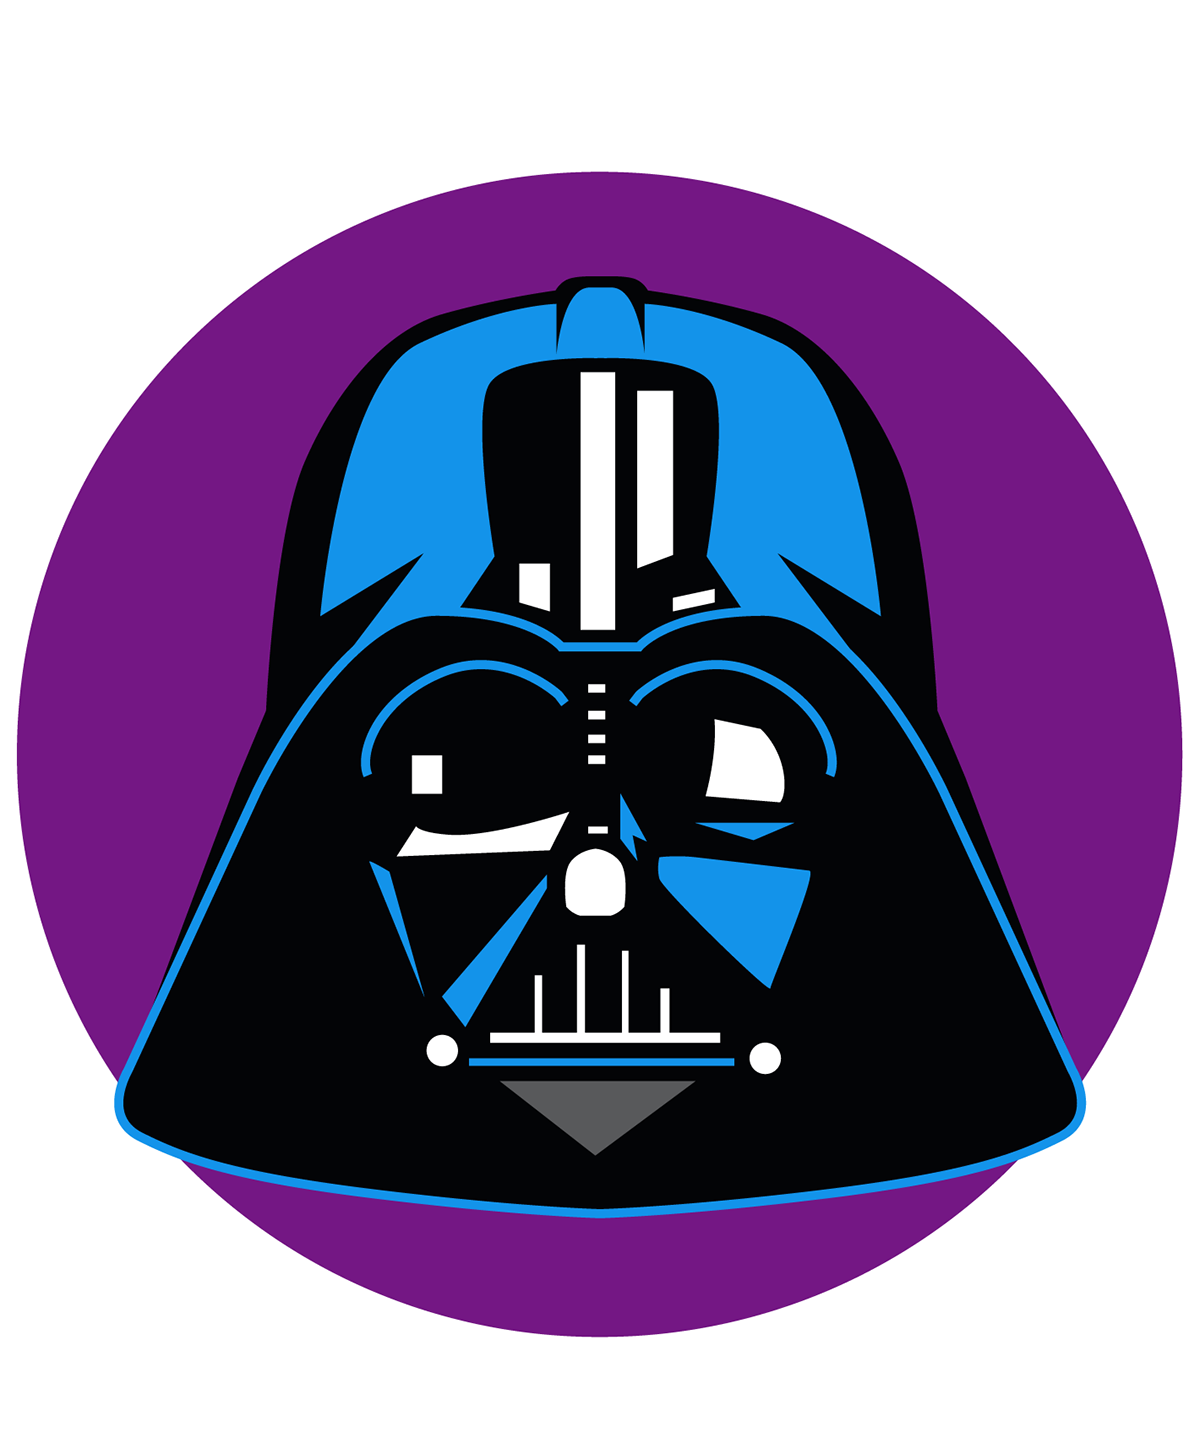 Starwars clipart head darth vader. Star wars emoji usa